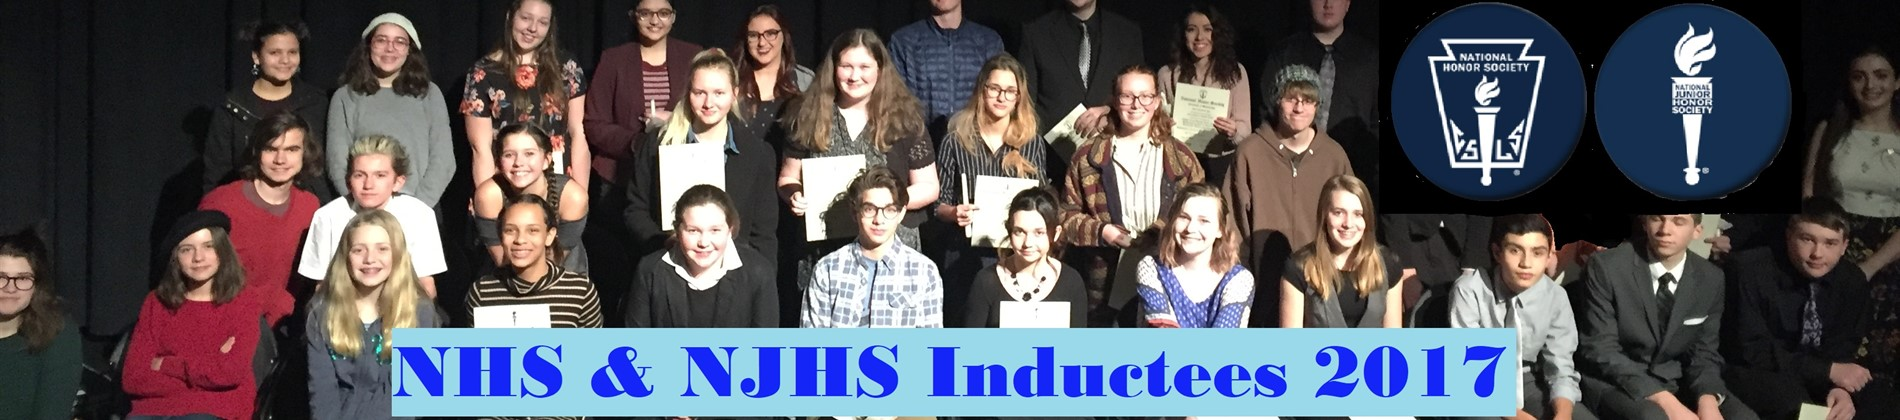 A big congratulations to our new members of National Honor Society and National Junior Honor Society!!